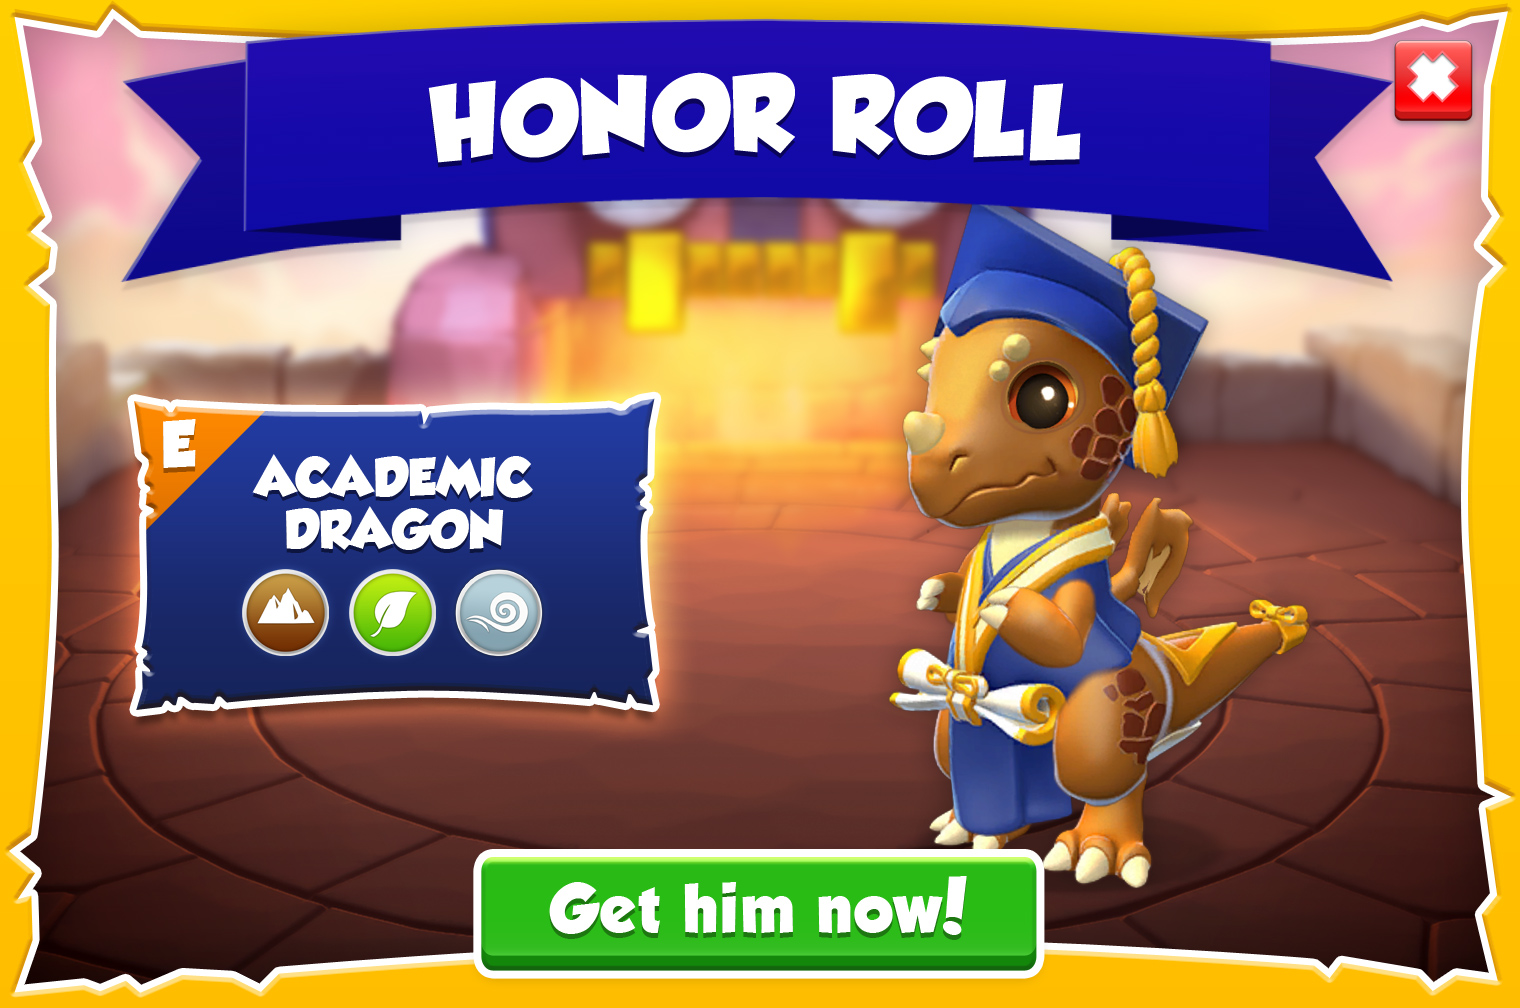 honor-roll-academic